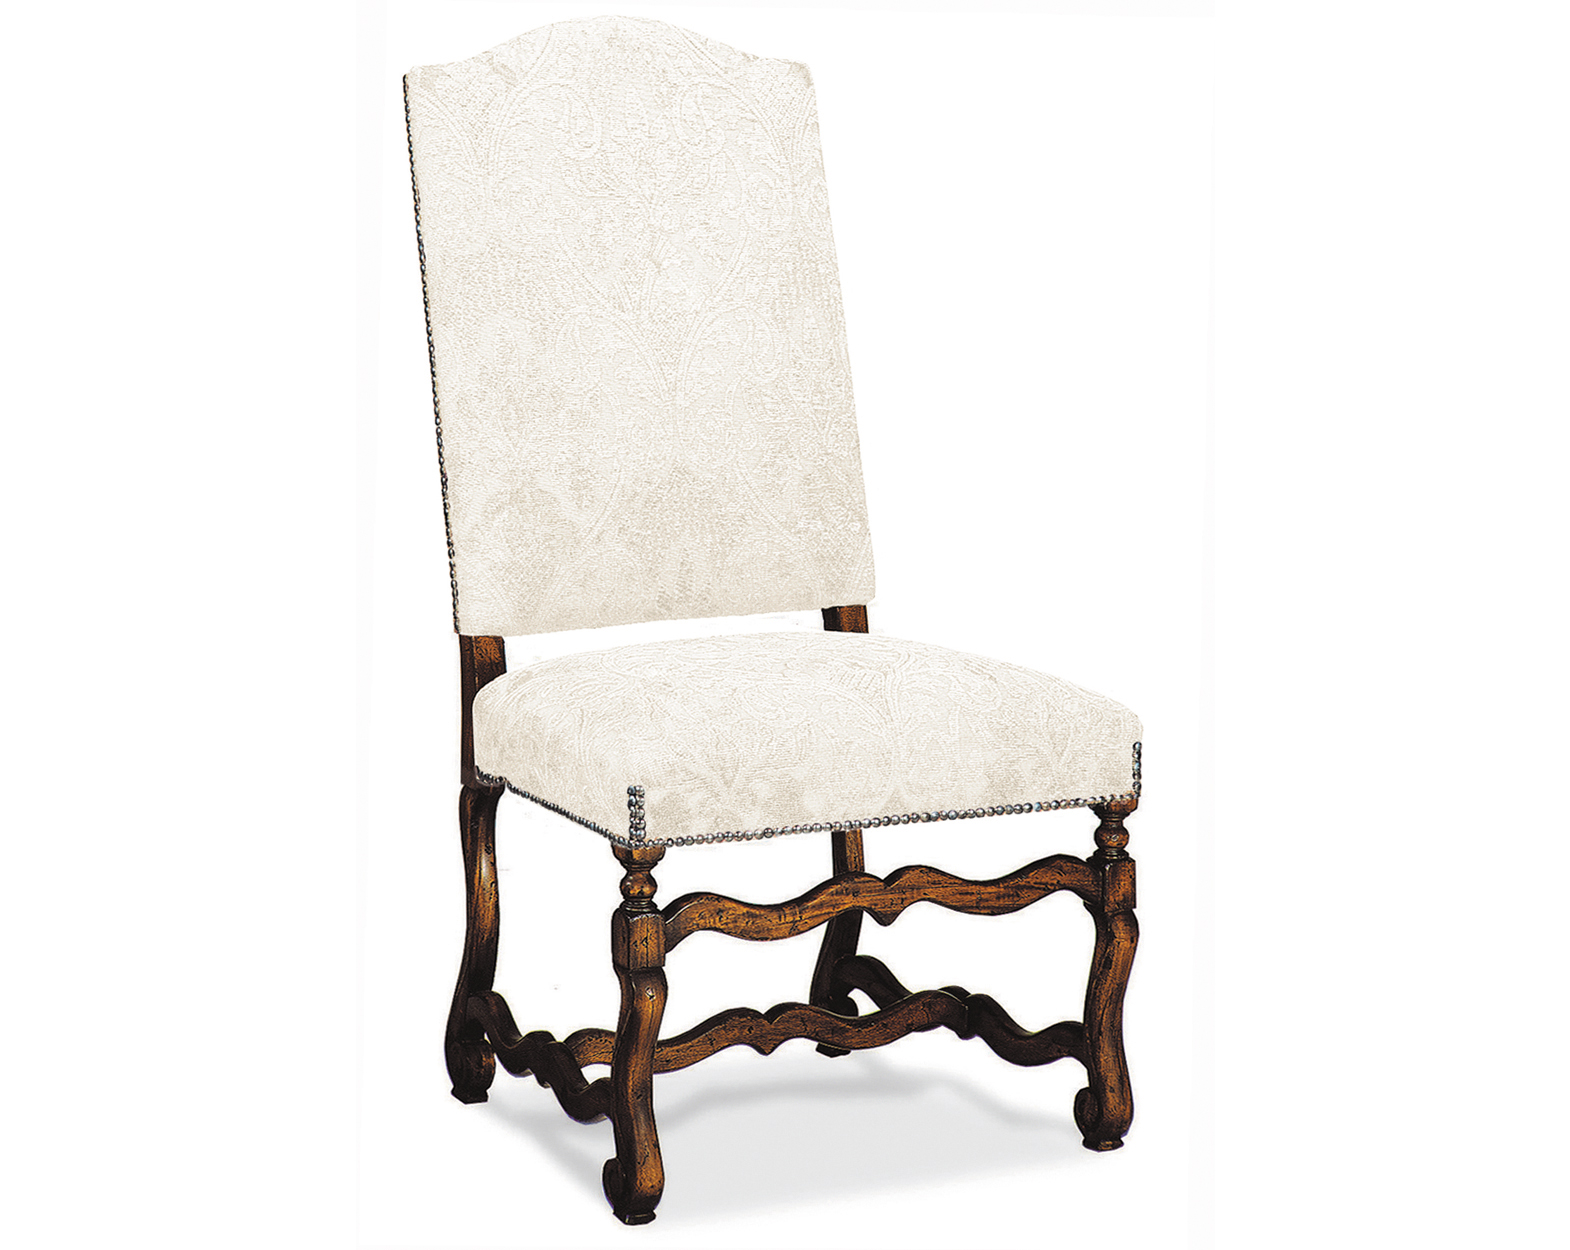 LOUIS XIII GALLATIN SIDE CHAIR